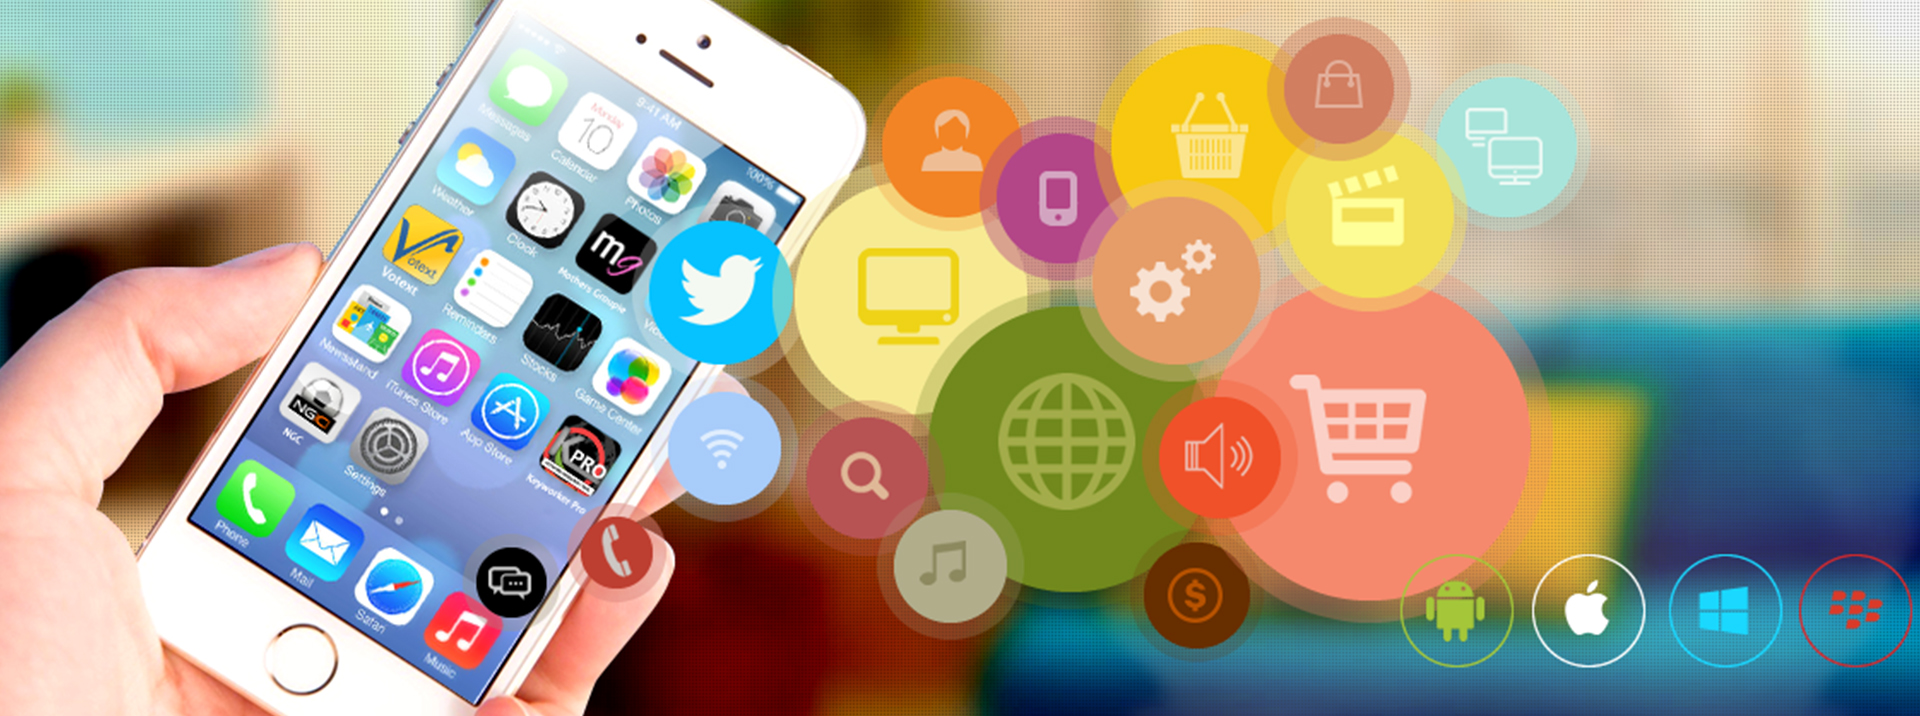 Create apps that scale your business